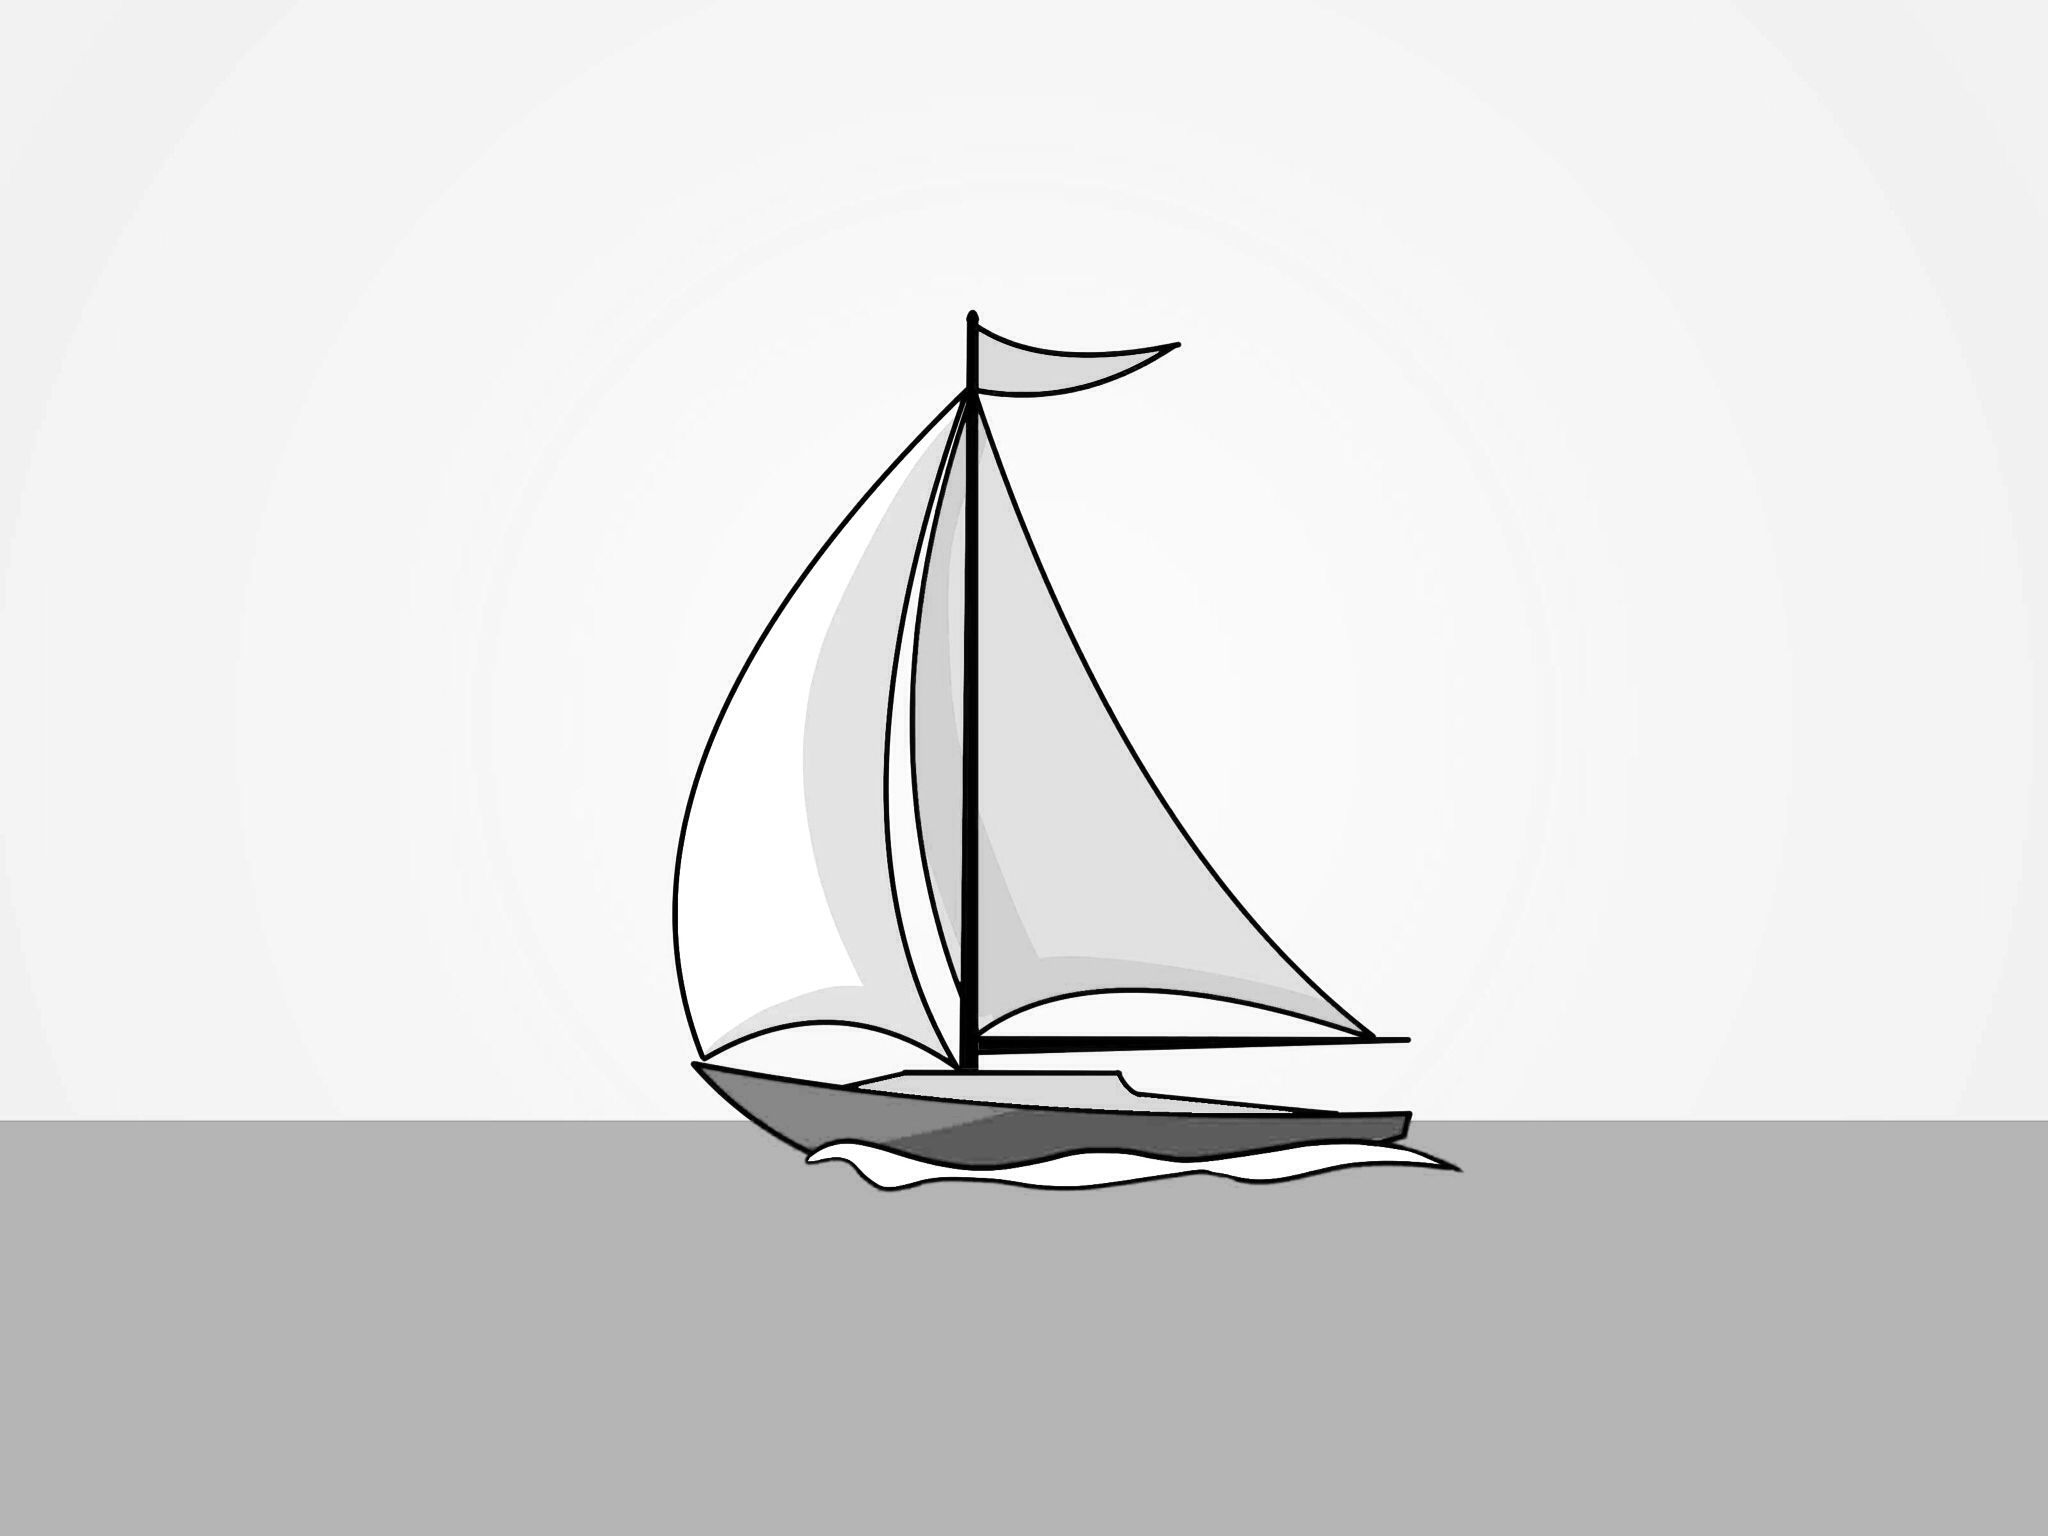 how to draw a boat other printable images gallery category page 22 boat draw to a how